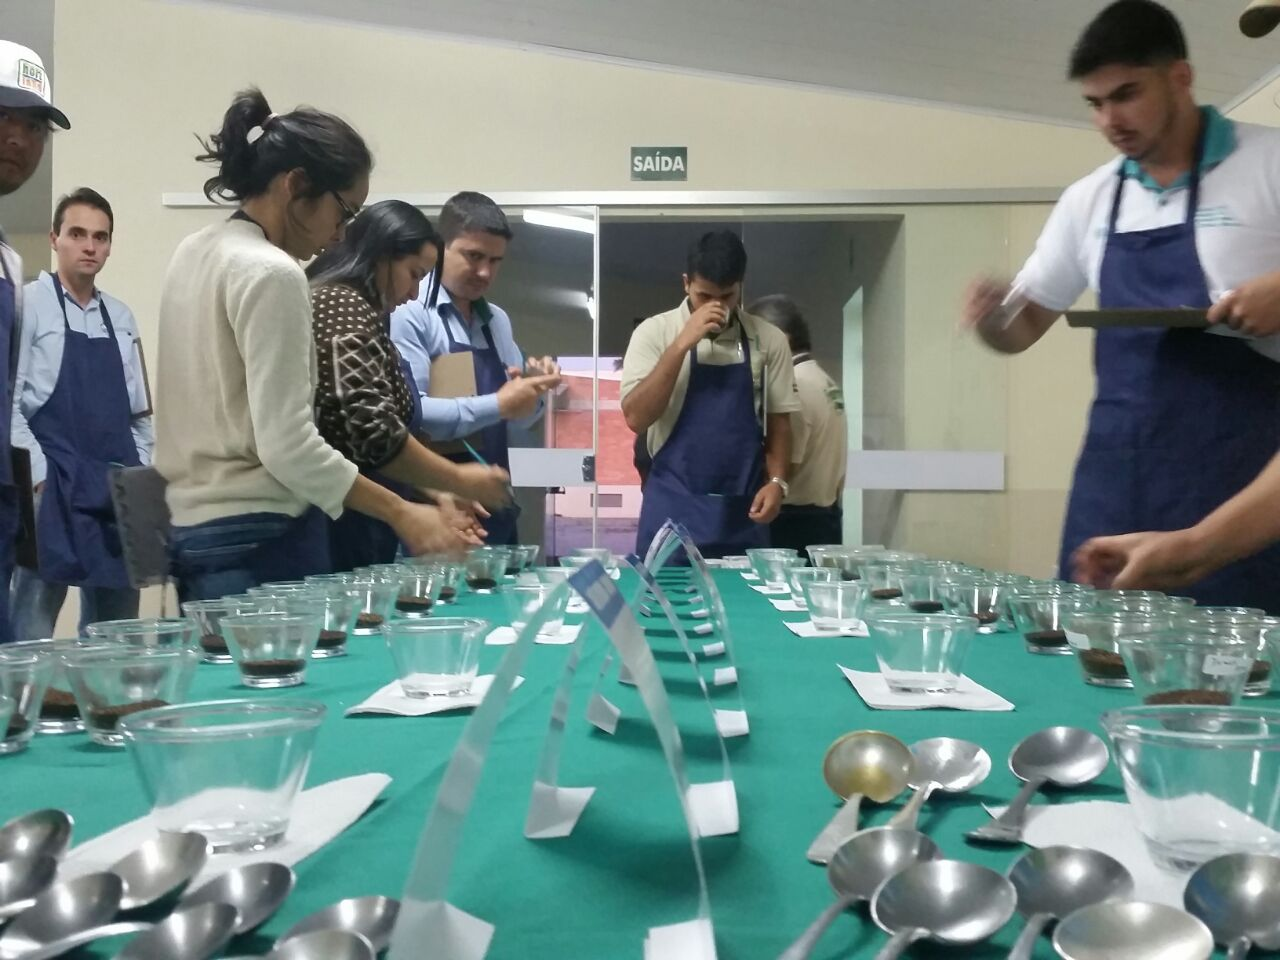 Coffee producers and their team cupping coffees from several countries of origin